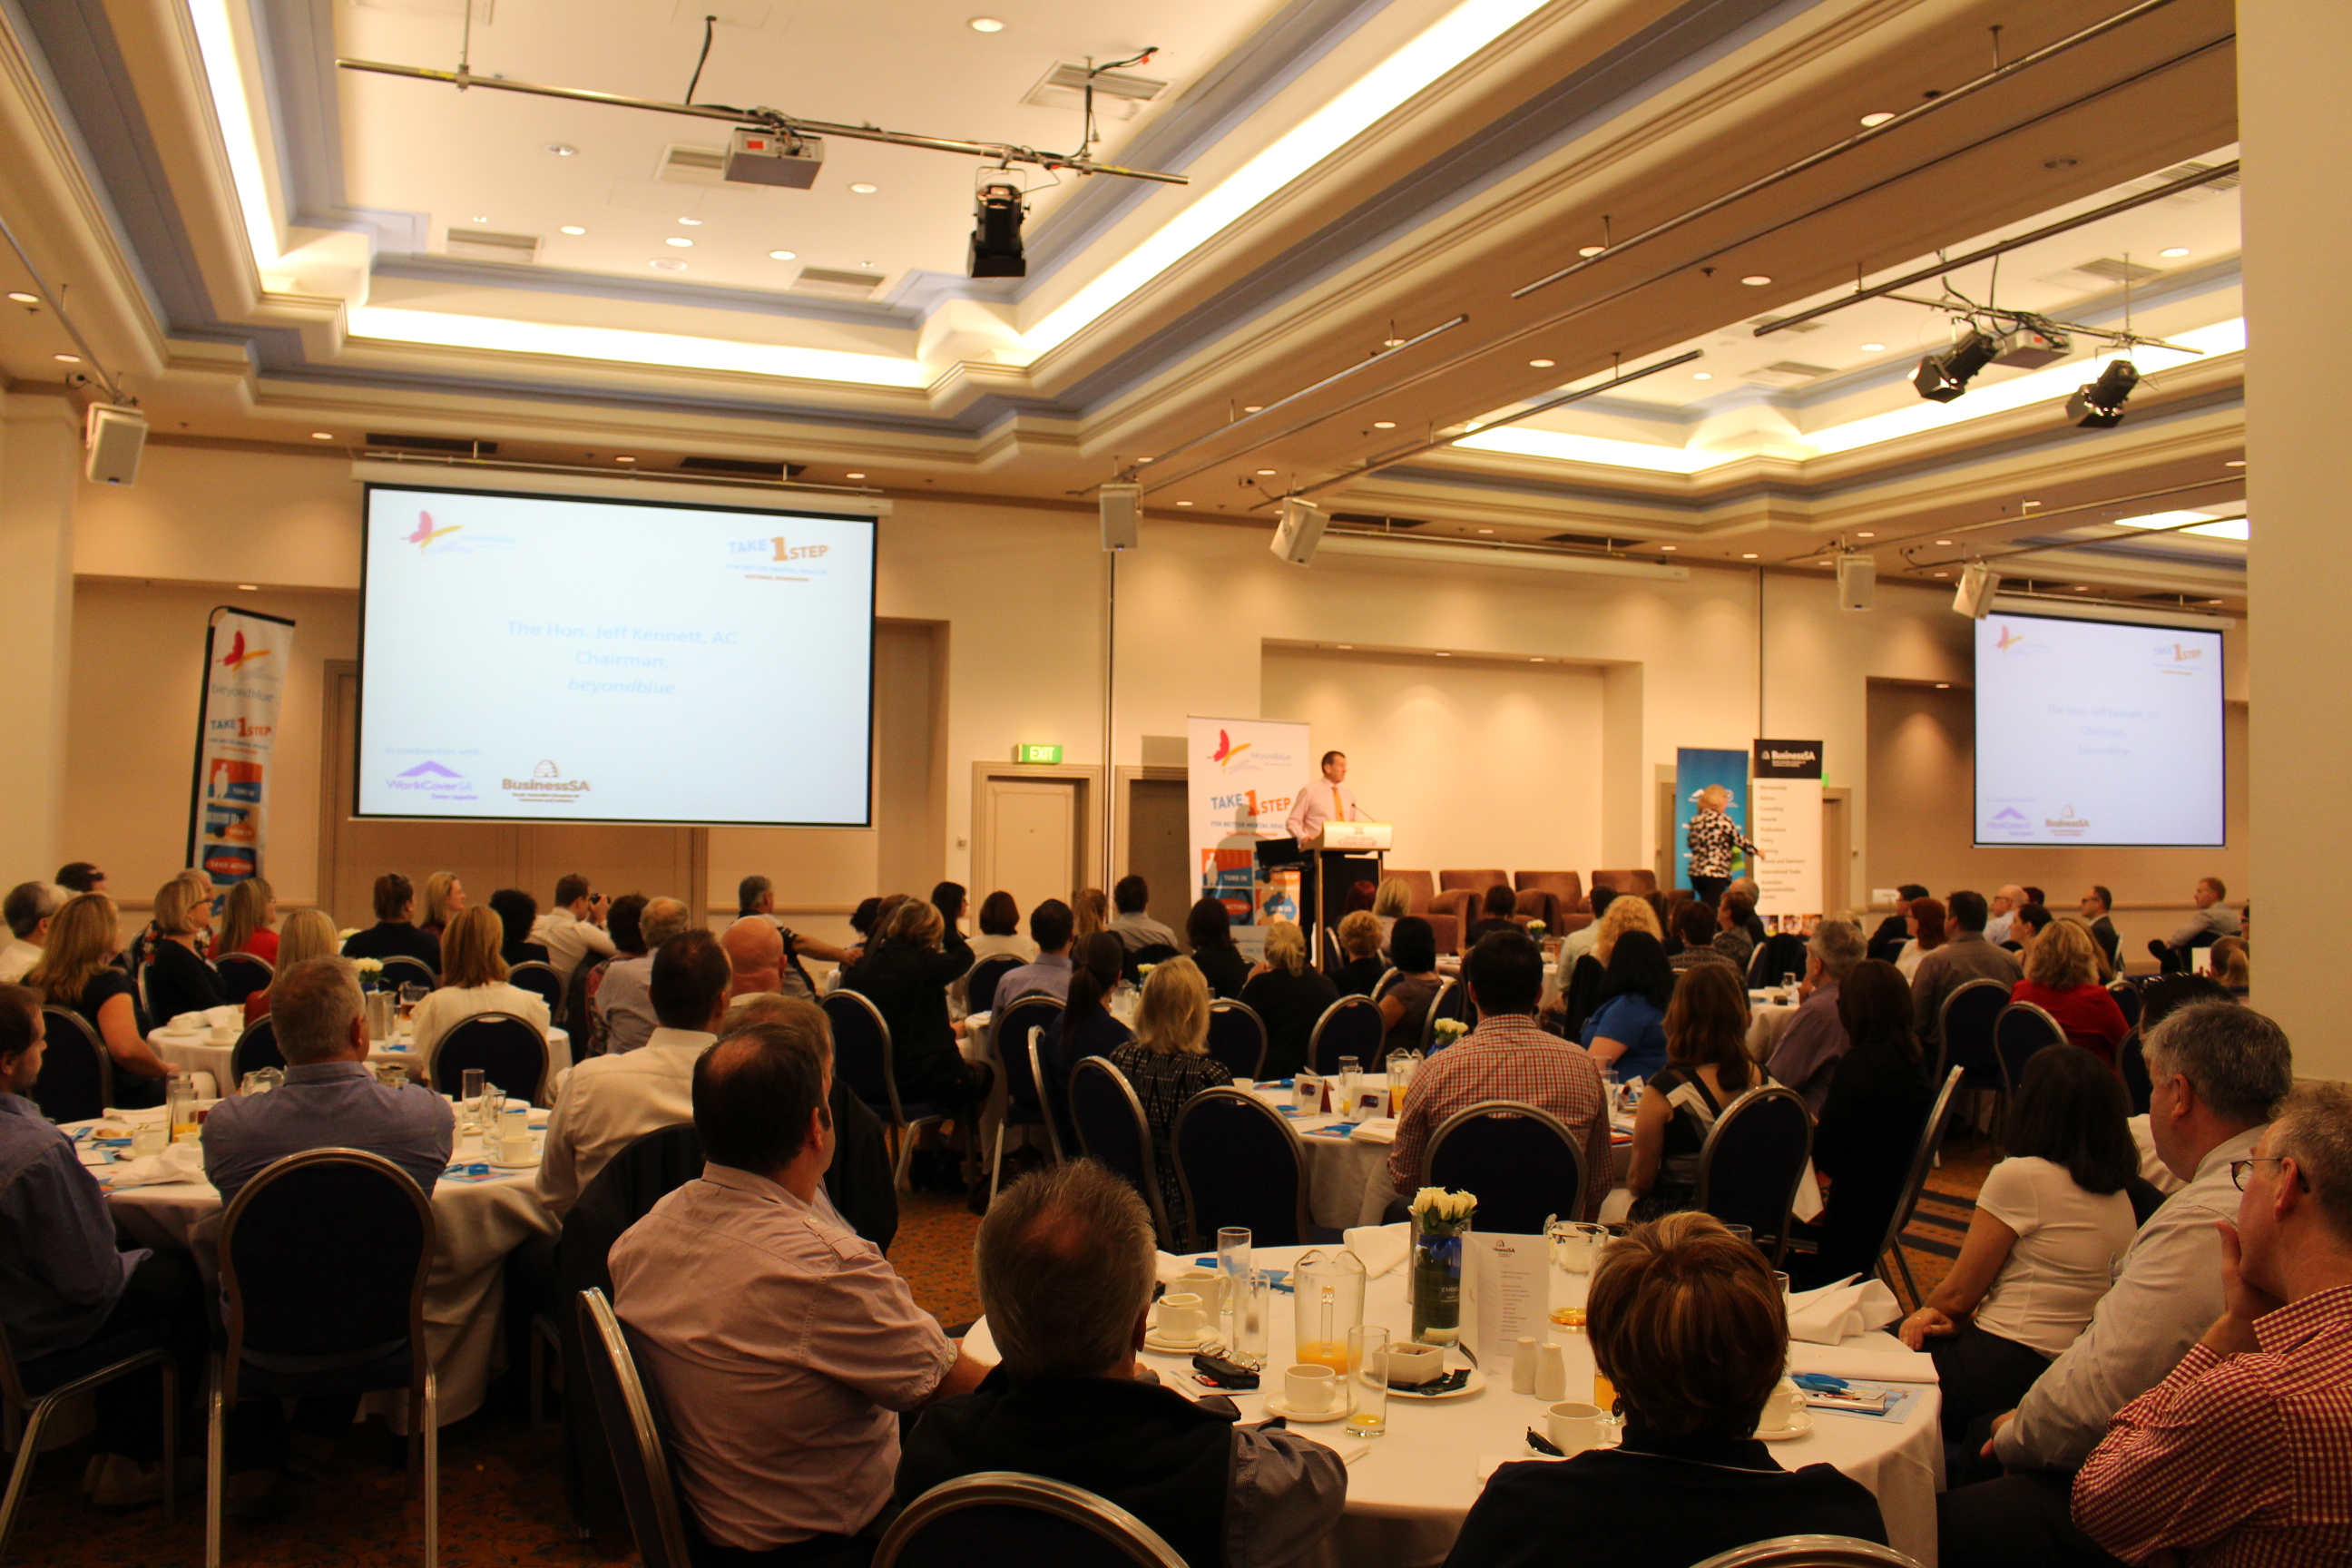 Beyond Blue Chairman The Hon Jeff Kennett AC addresses the workplace breakfast in Adelaide.